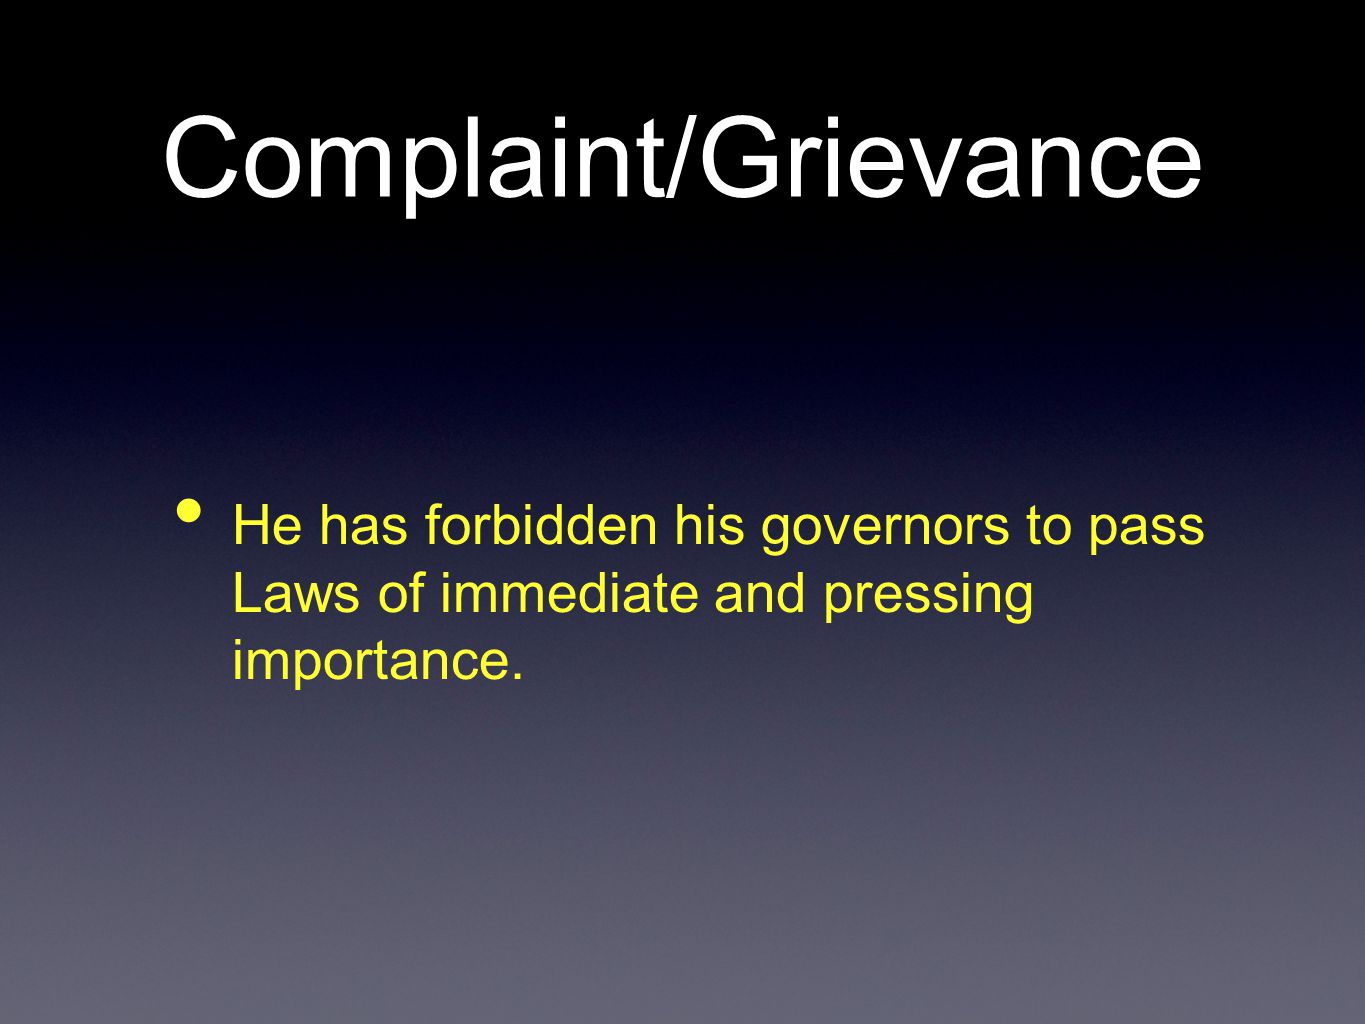 Complaint/Grievance He has forbidden his governors to pass Laws of immediate and pressing importance.